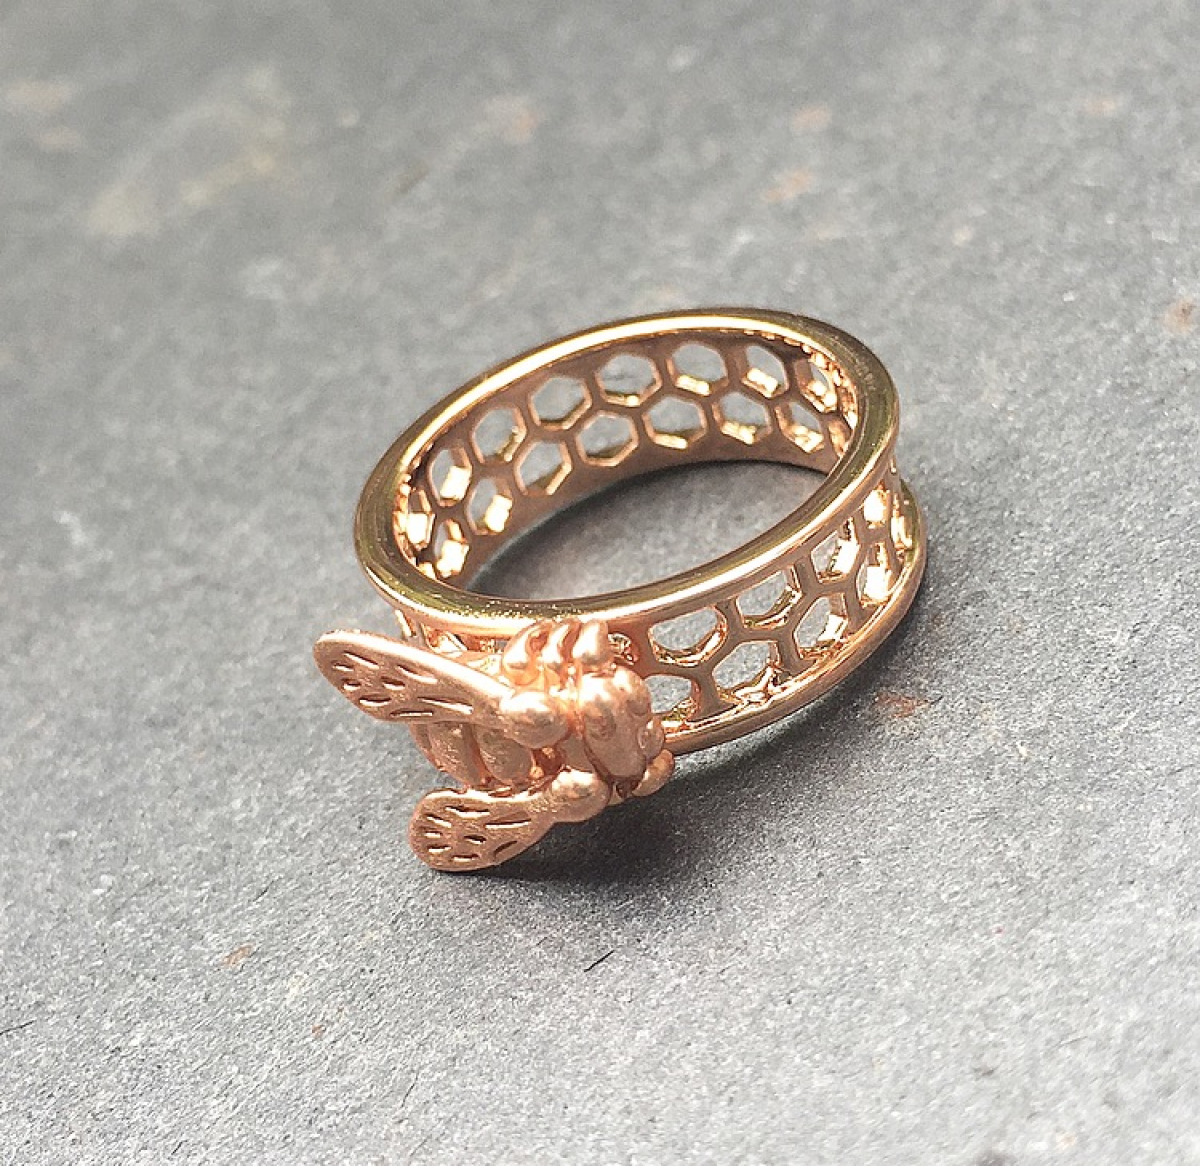 Baby Bee & Honeycomb Ring Rose Gold - Small Size Only